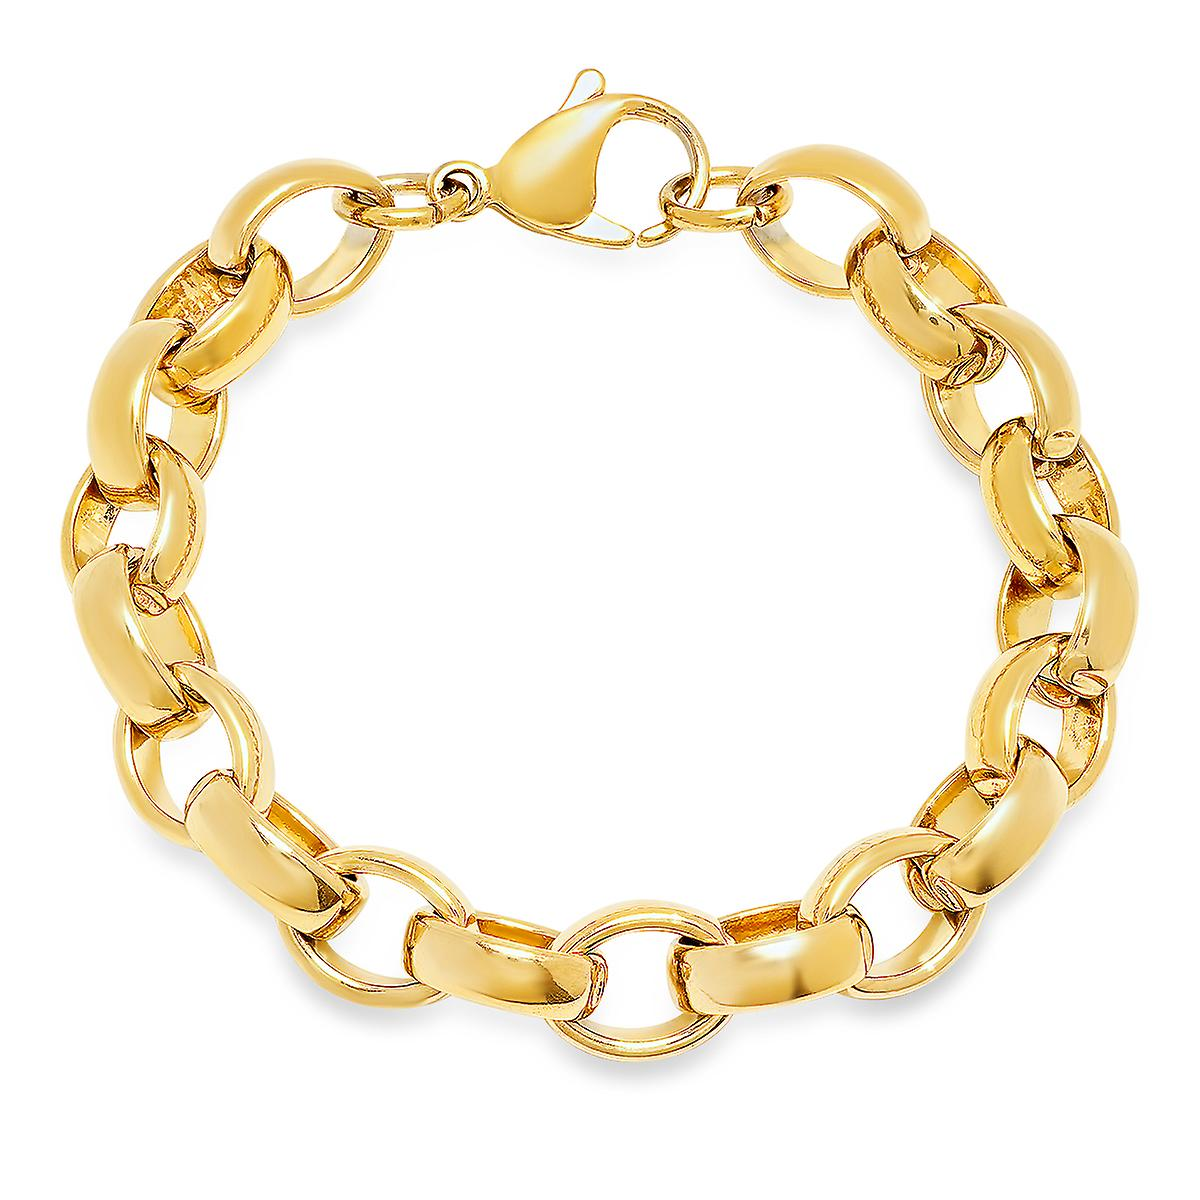 Ladies 18K Gold Plated Stainless Steel Chain Link Bracelet